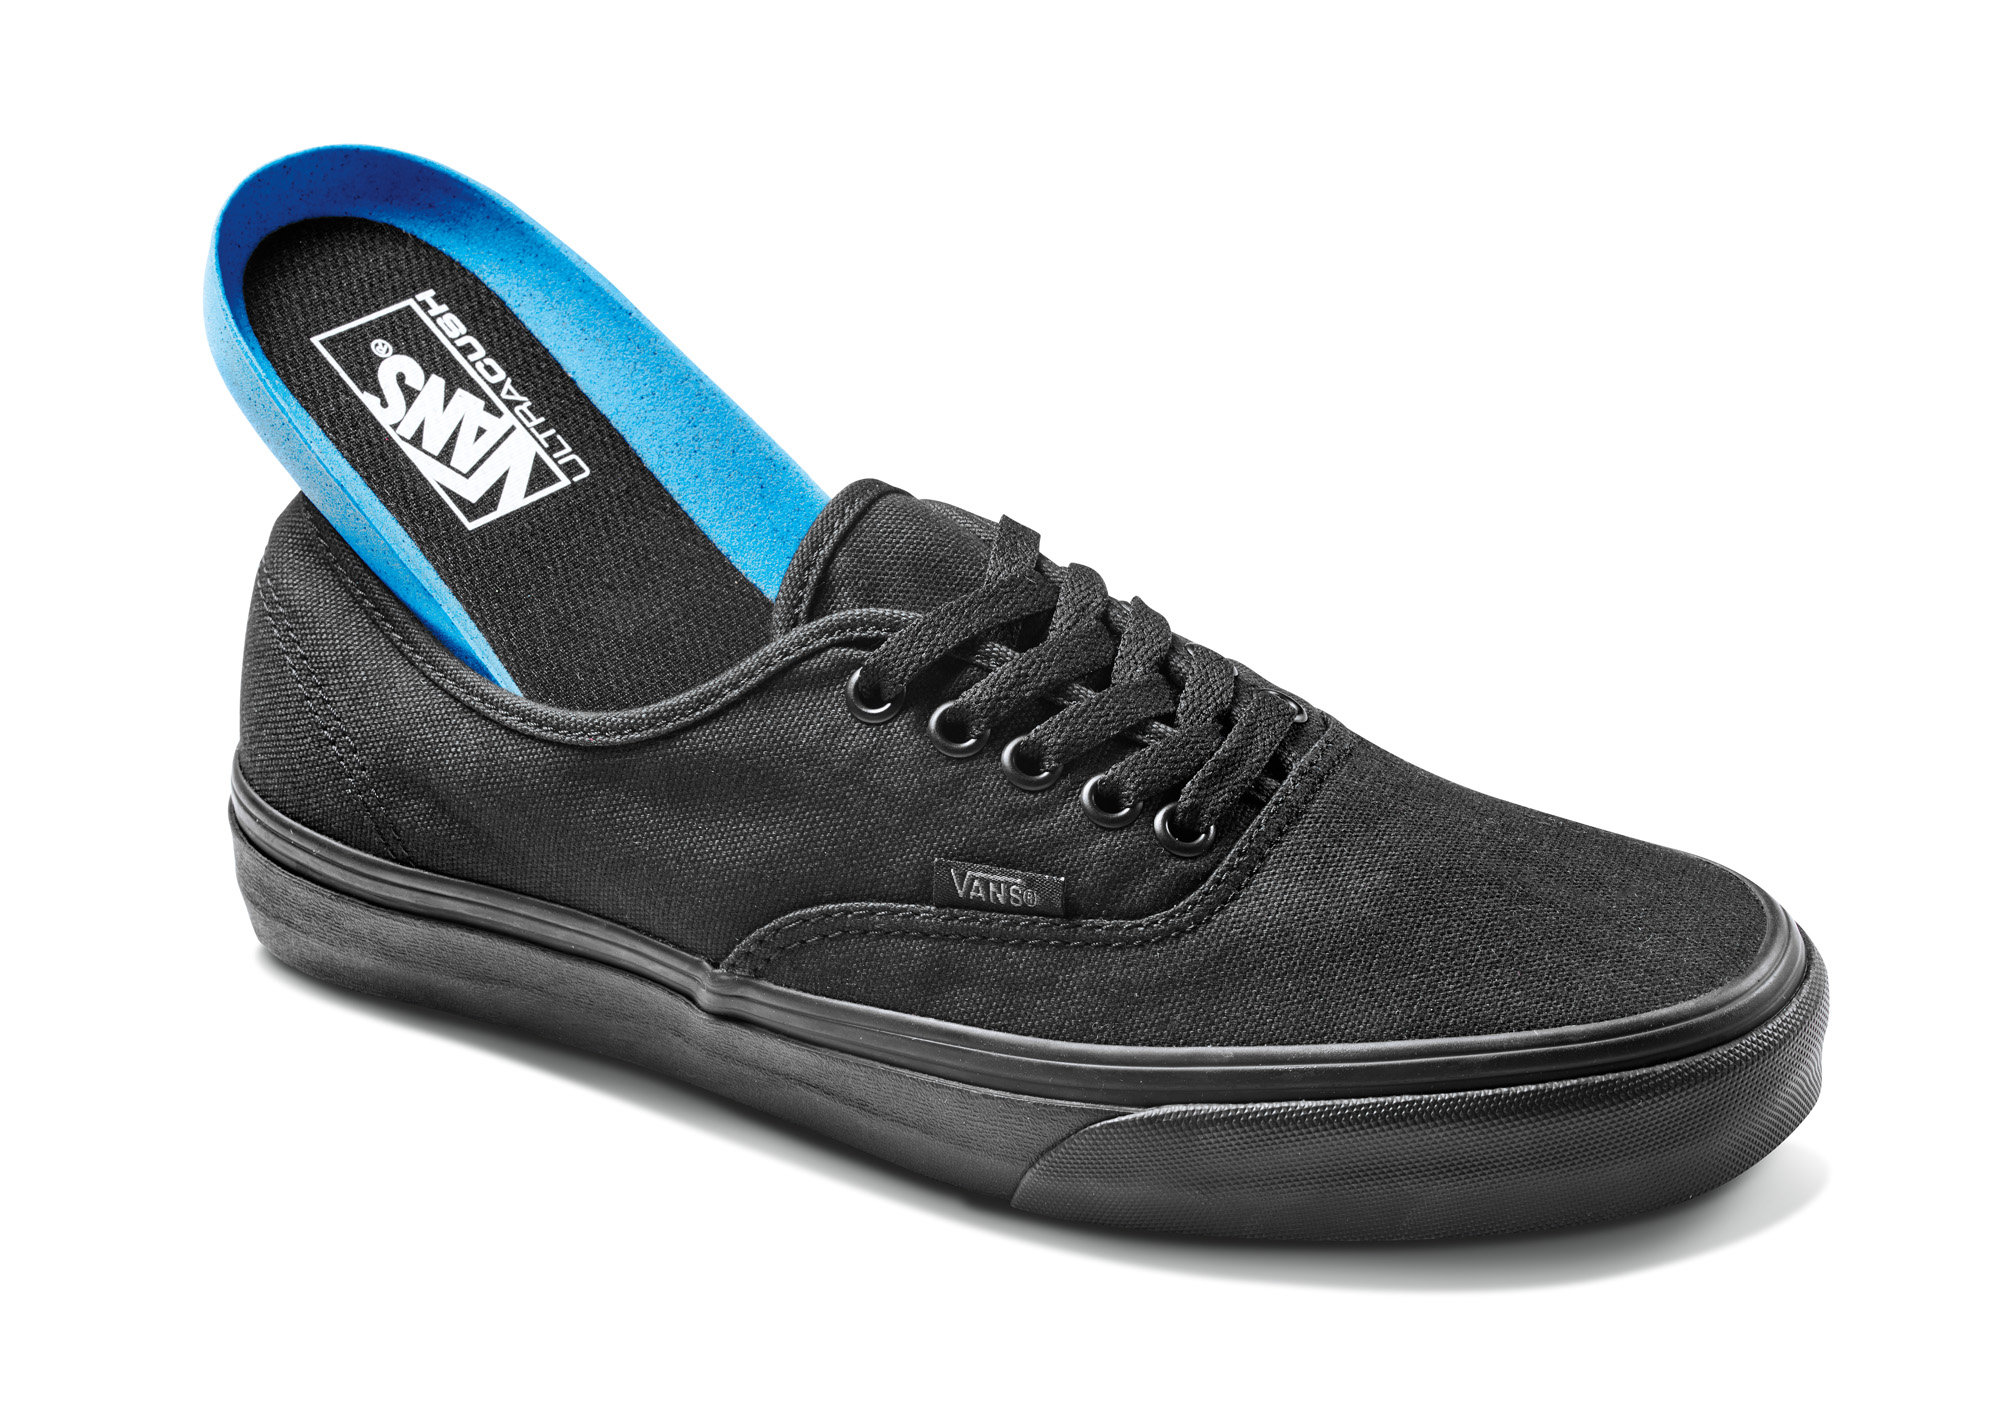 VANS DEBUTS MADE FOR THE MAKERS CLASSICS COLLECTION